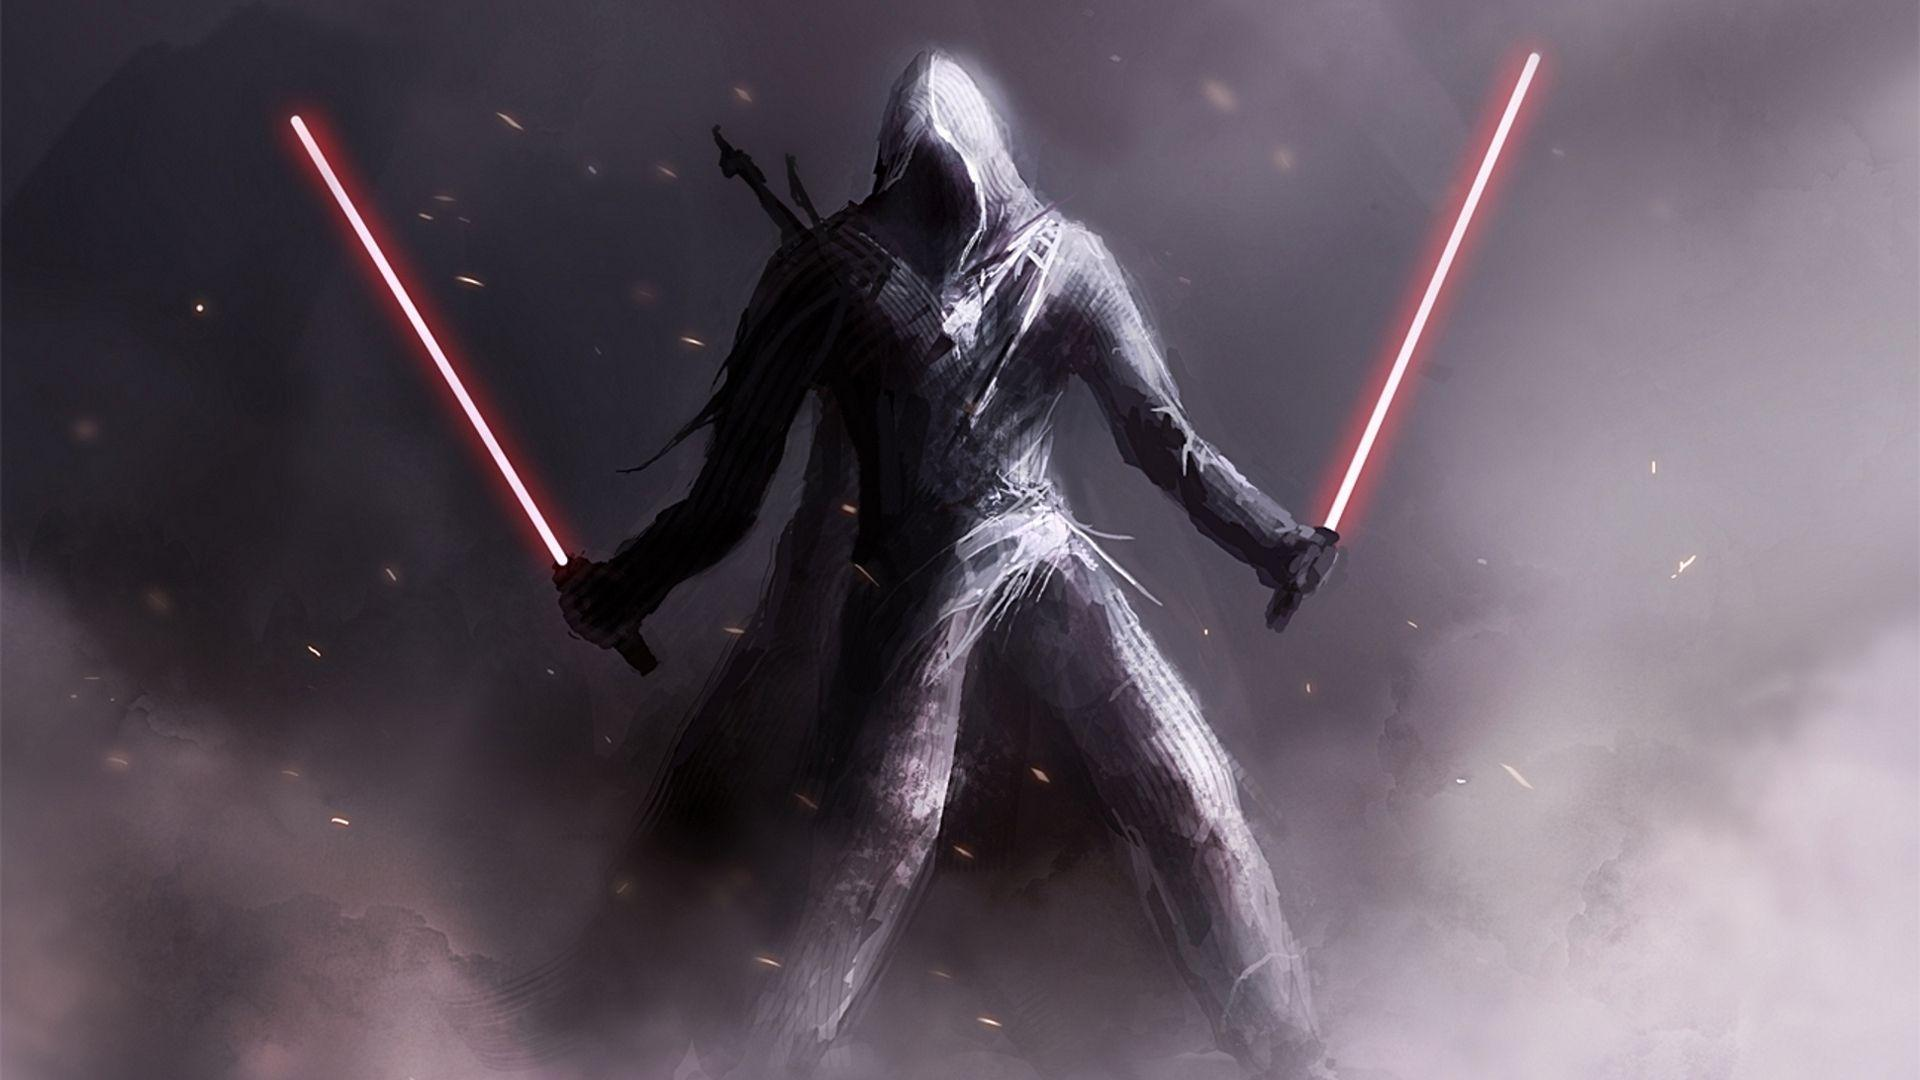 sith wallpaper 1080p star - photo #15